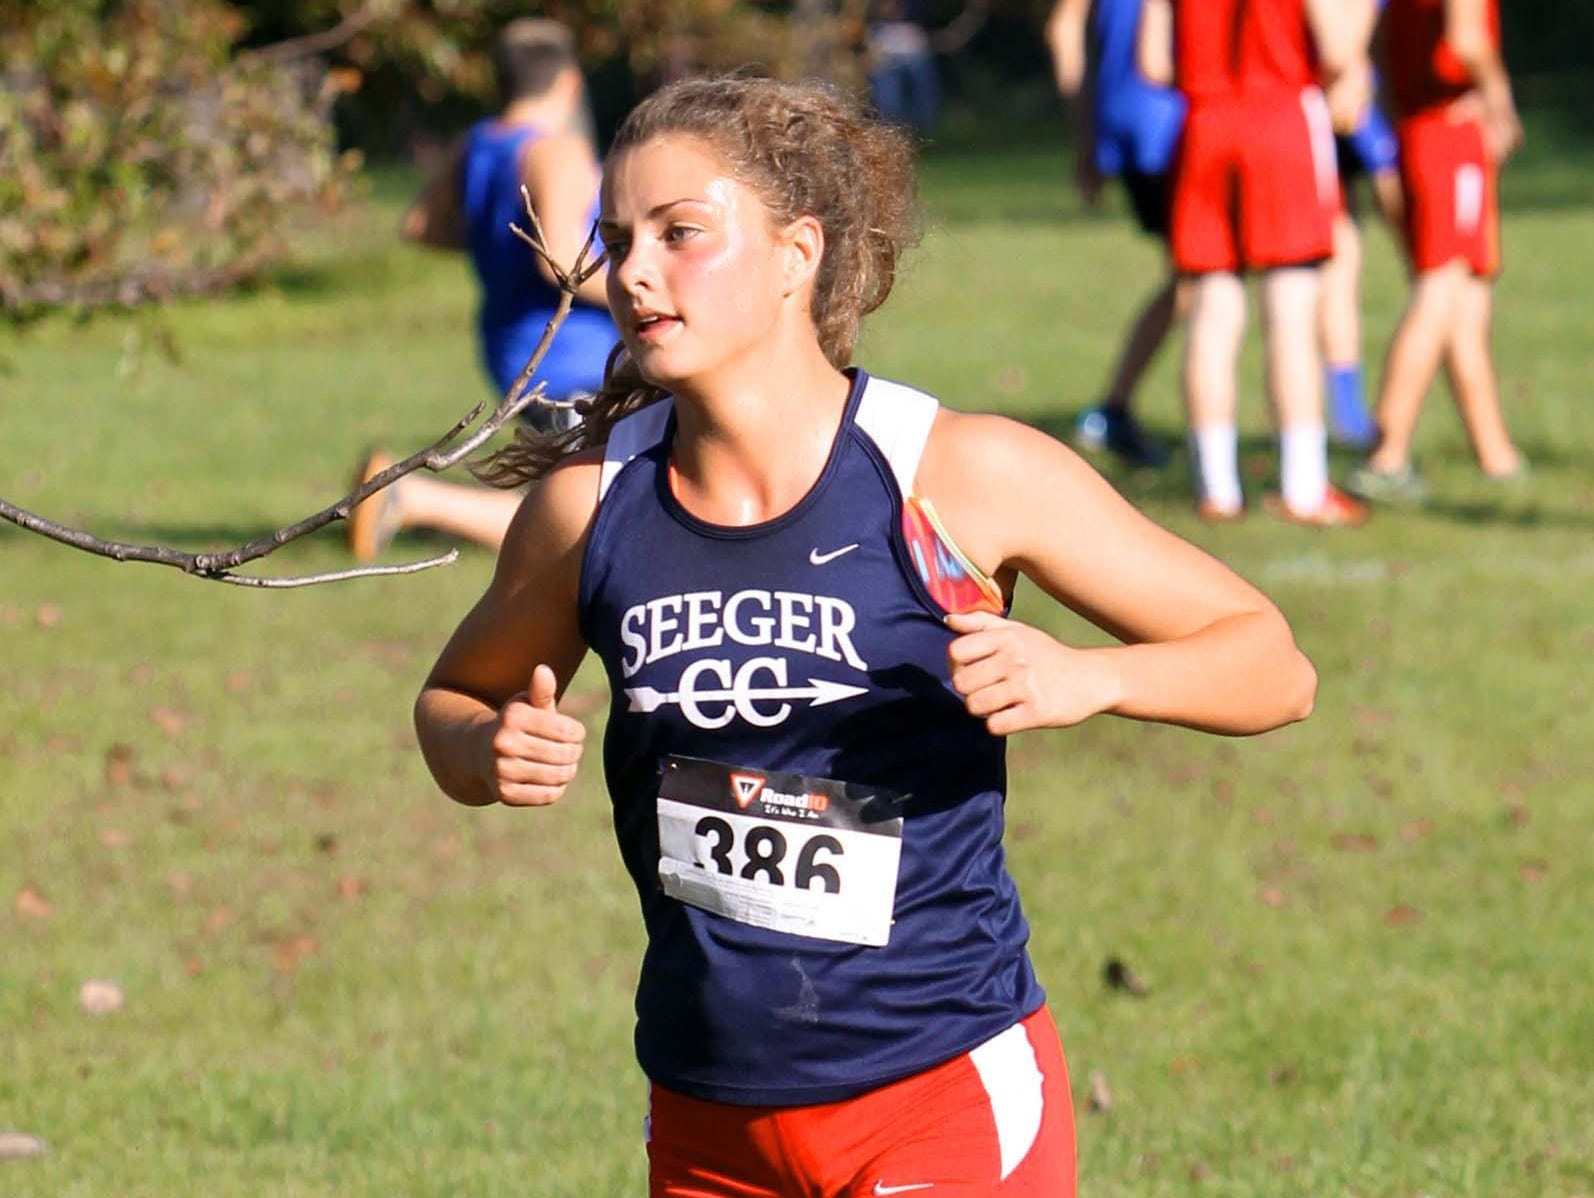 Becca Haussin of Seeger approximately 400 meters from the finish line at the Wabash River Conference cross country meet.